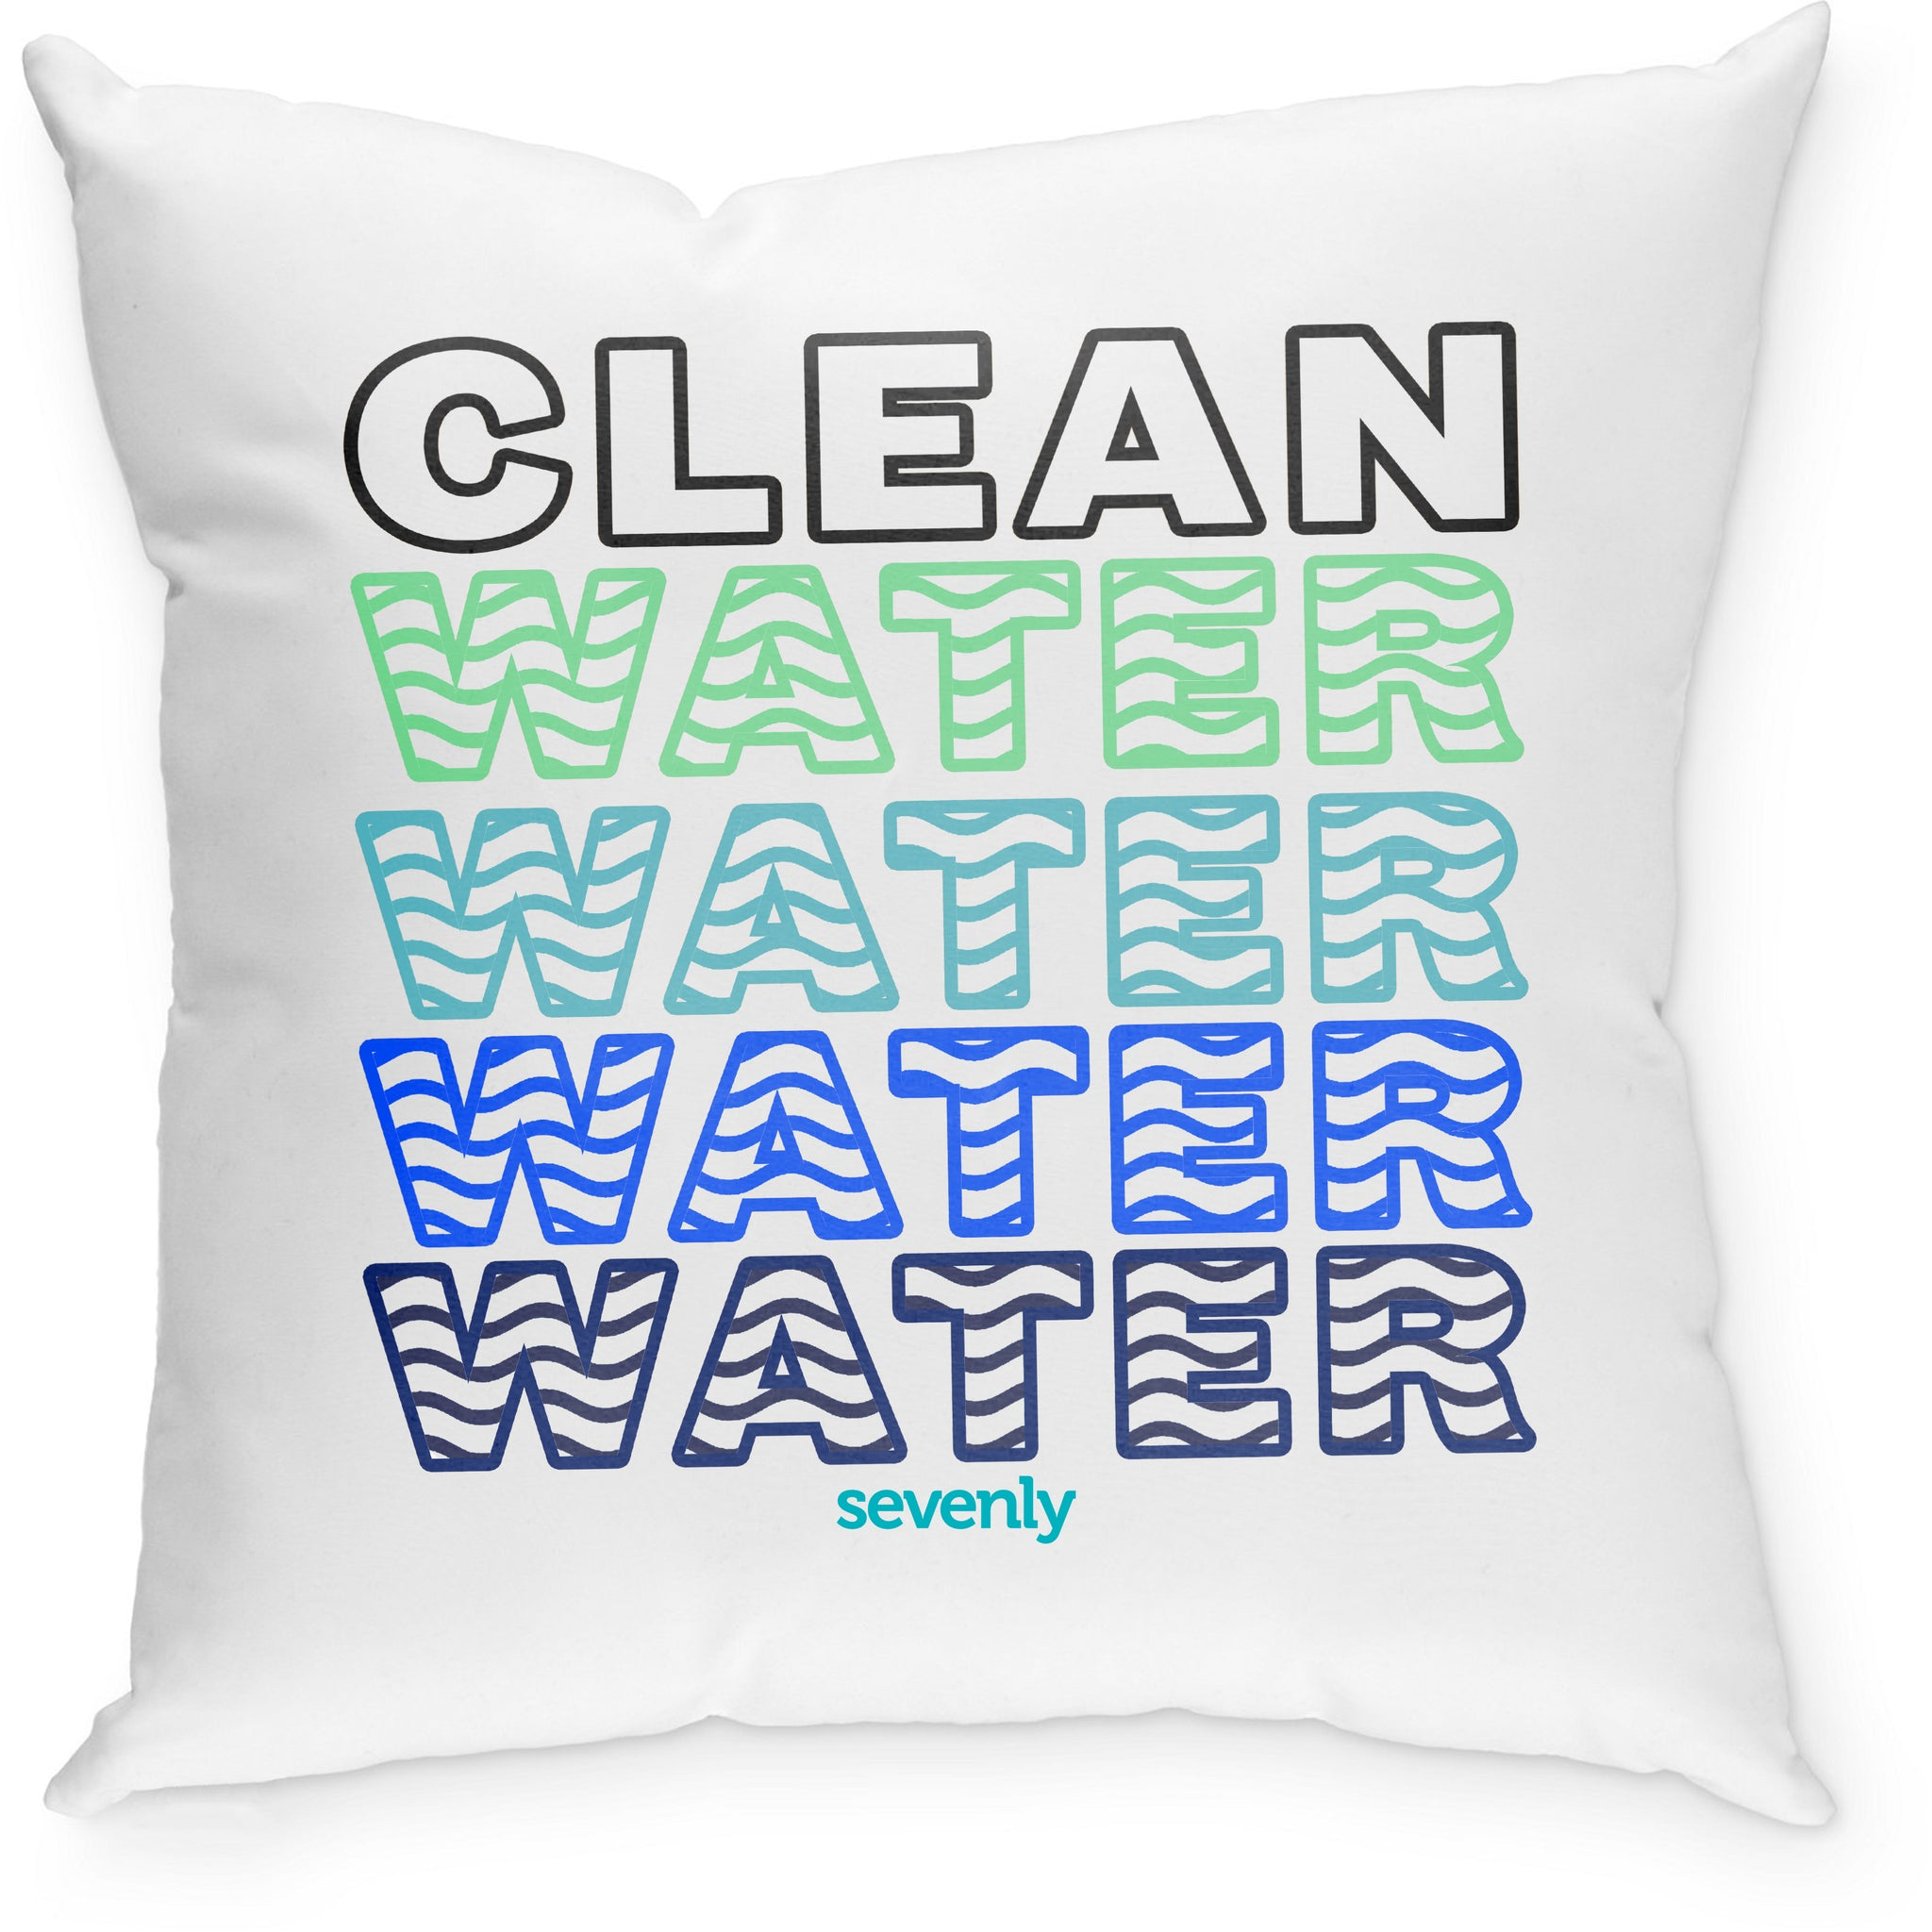 SEVENLY HOME GOODS - COTTON CANVAS THROW PILLOW - Clean Water Water Water